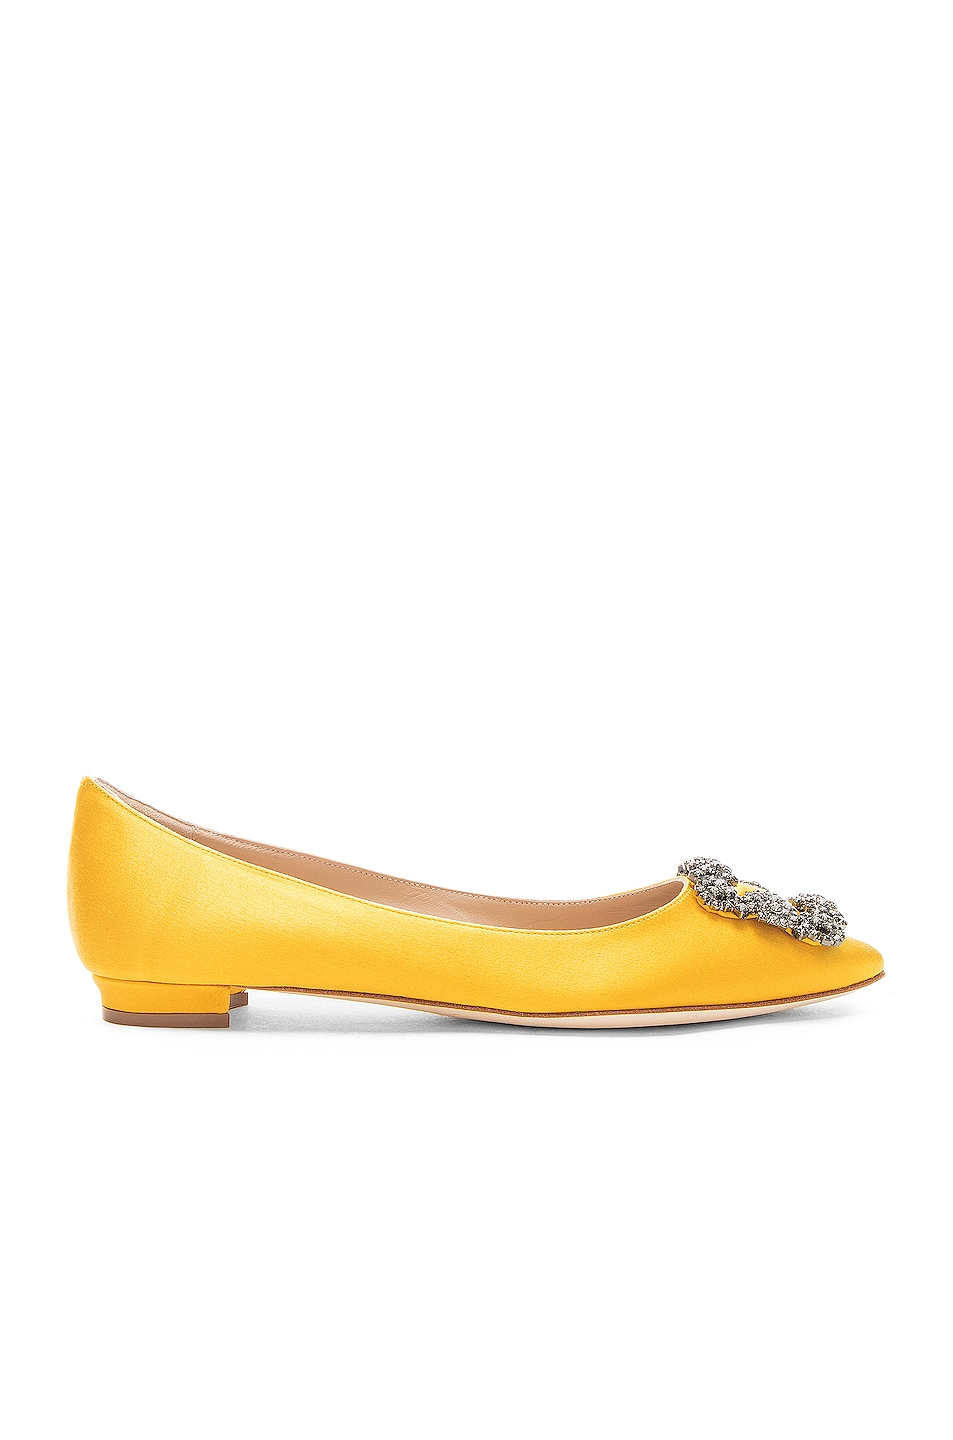 Image 1 of Manolo Blahnik Hangisiflat Satin 10 Pea Flat in Yellow